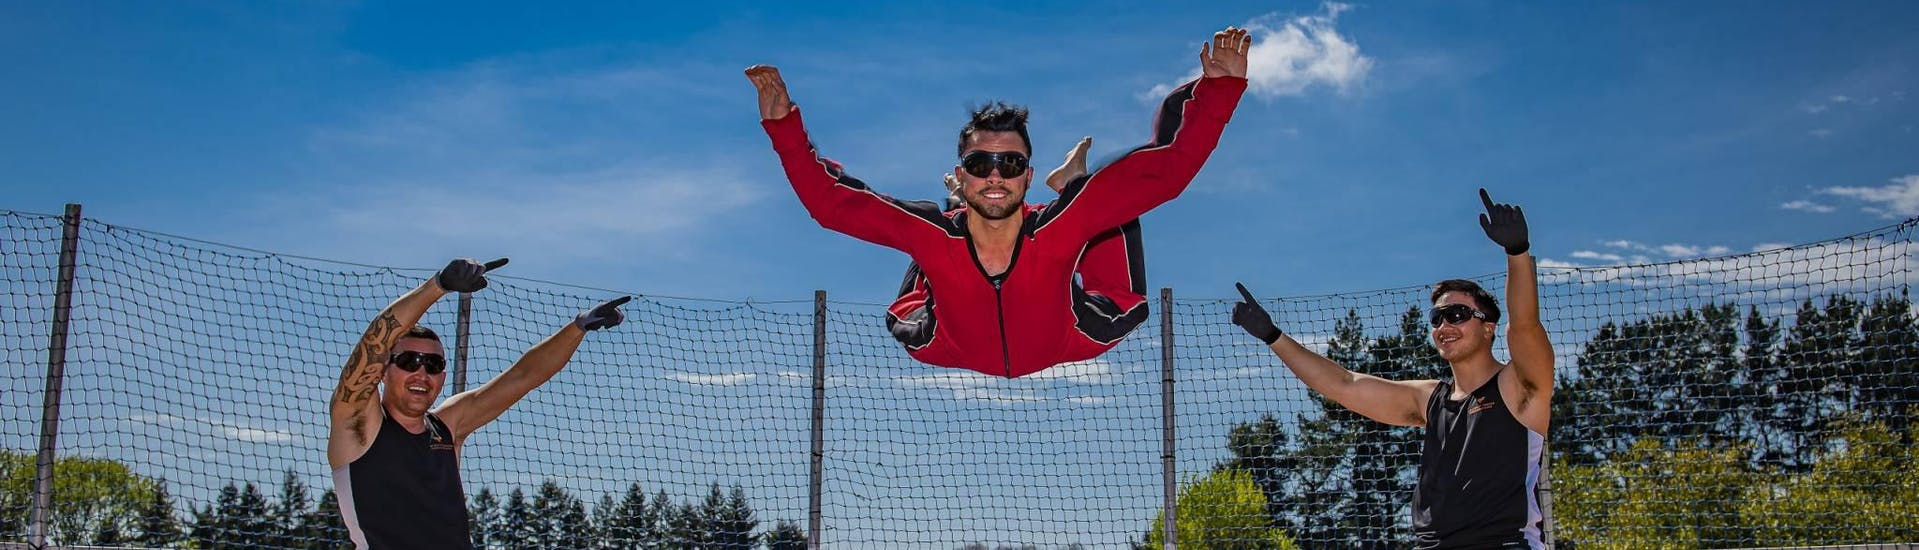 In Velocity Valley Rotorua Adventure Park, one lucky guy is experiencing the feeling of zero gravity during the Freefall Xtreme in Rotorua.